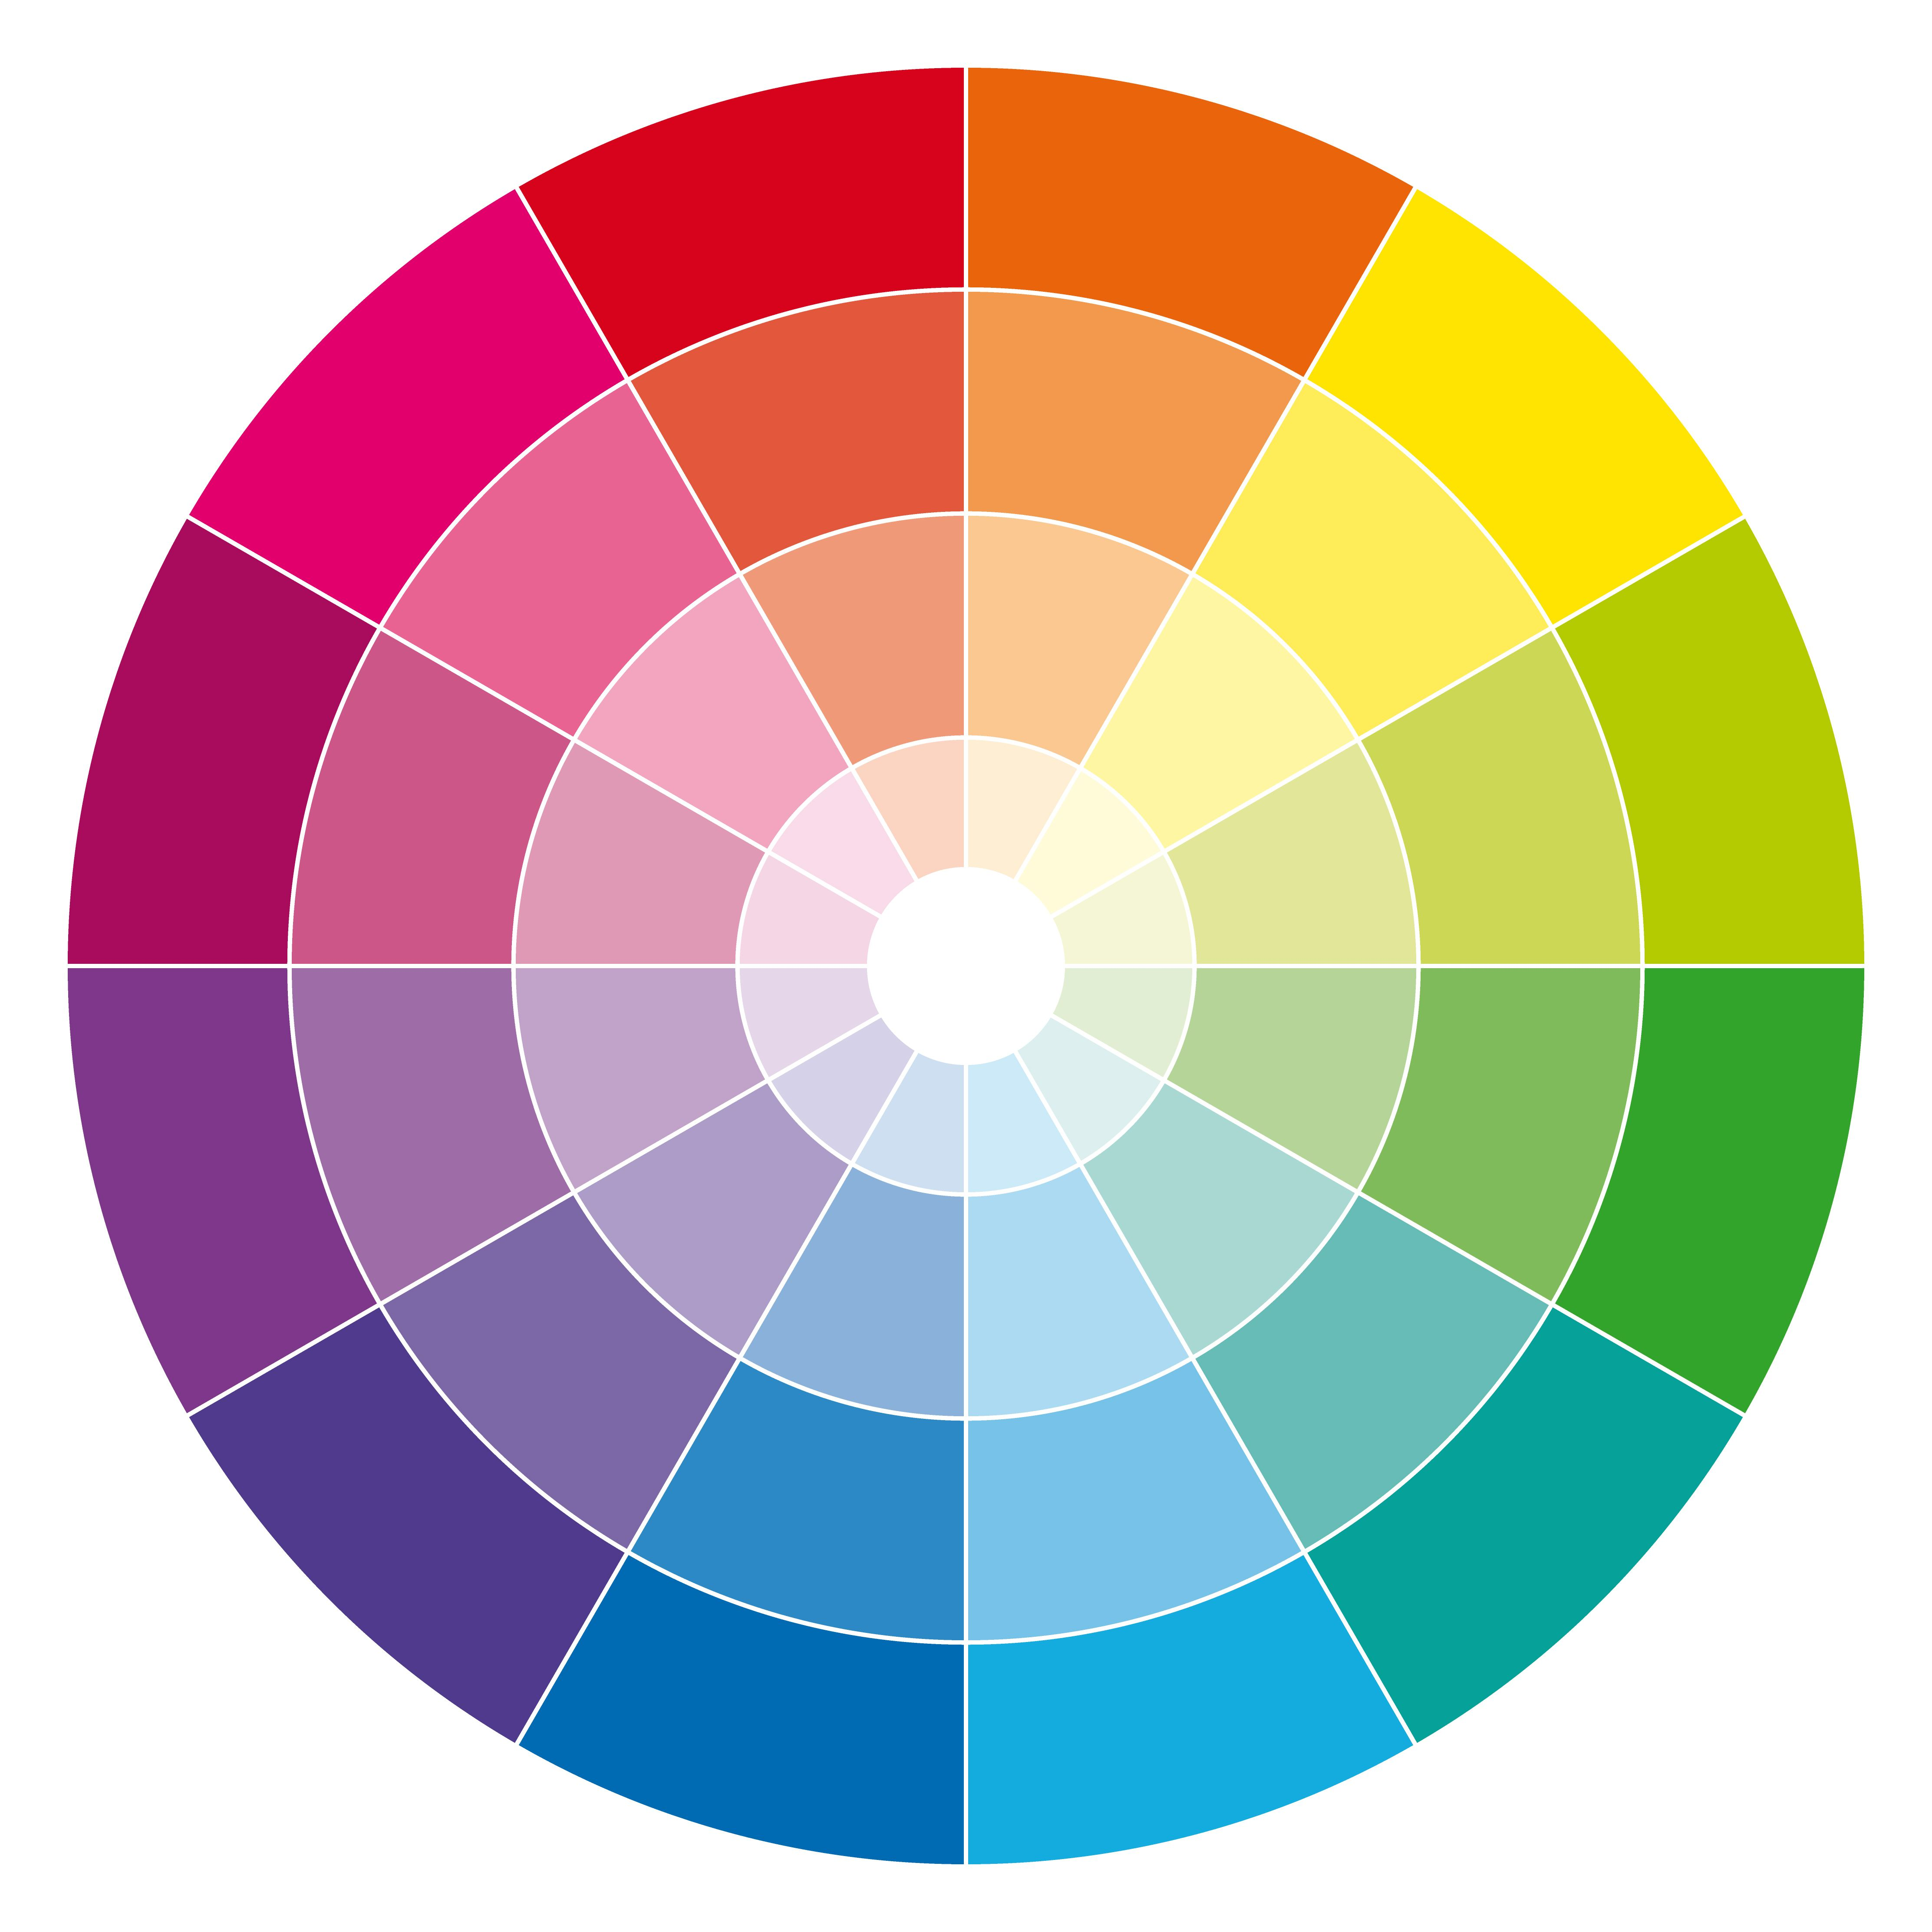 12 Hour Rgb Cmyk Color Wheel With Tones And Tints